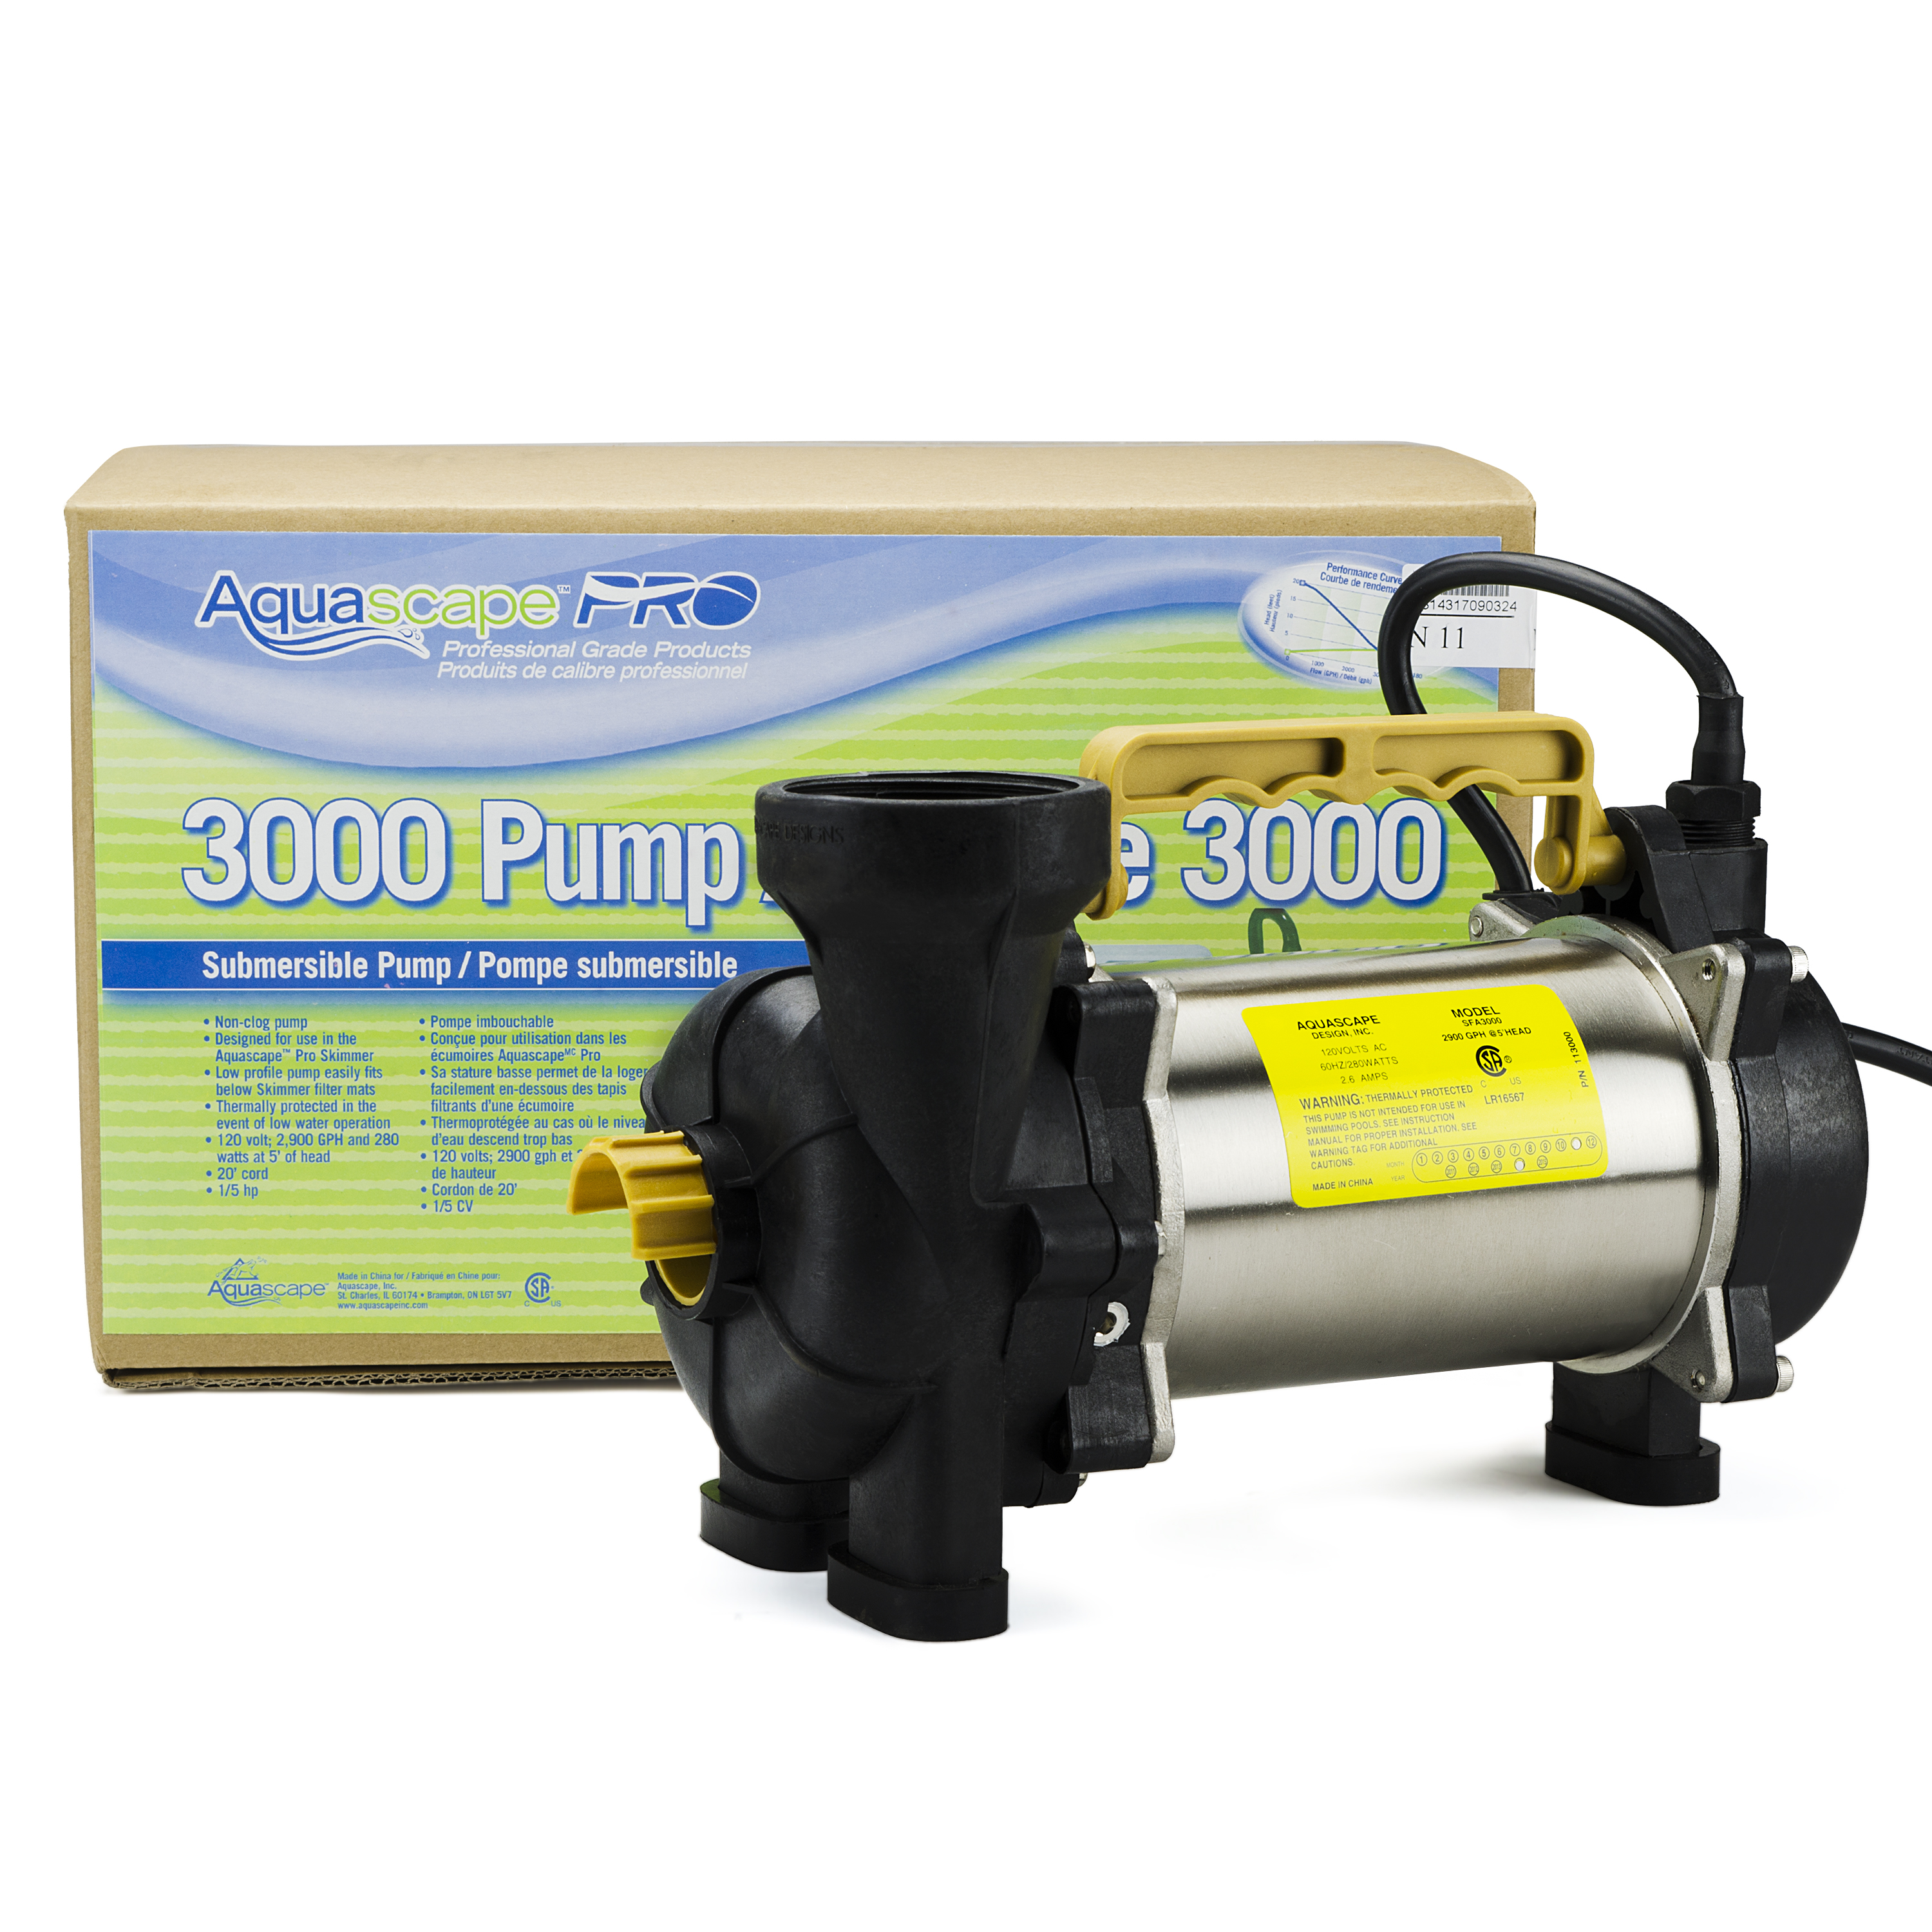 AquascapePRO 3000 Pond Pump